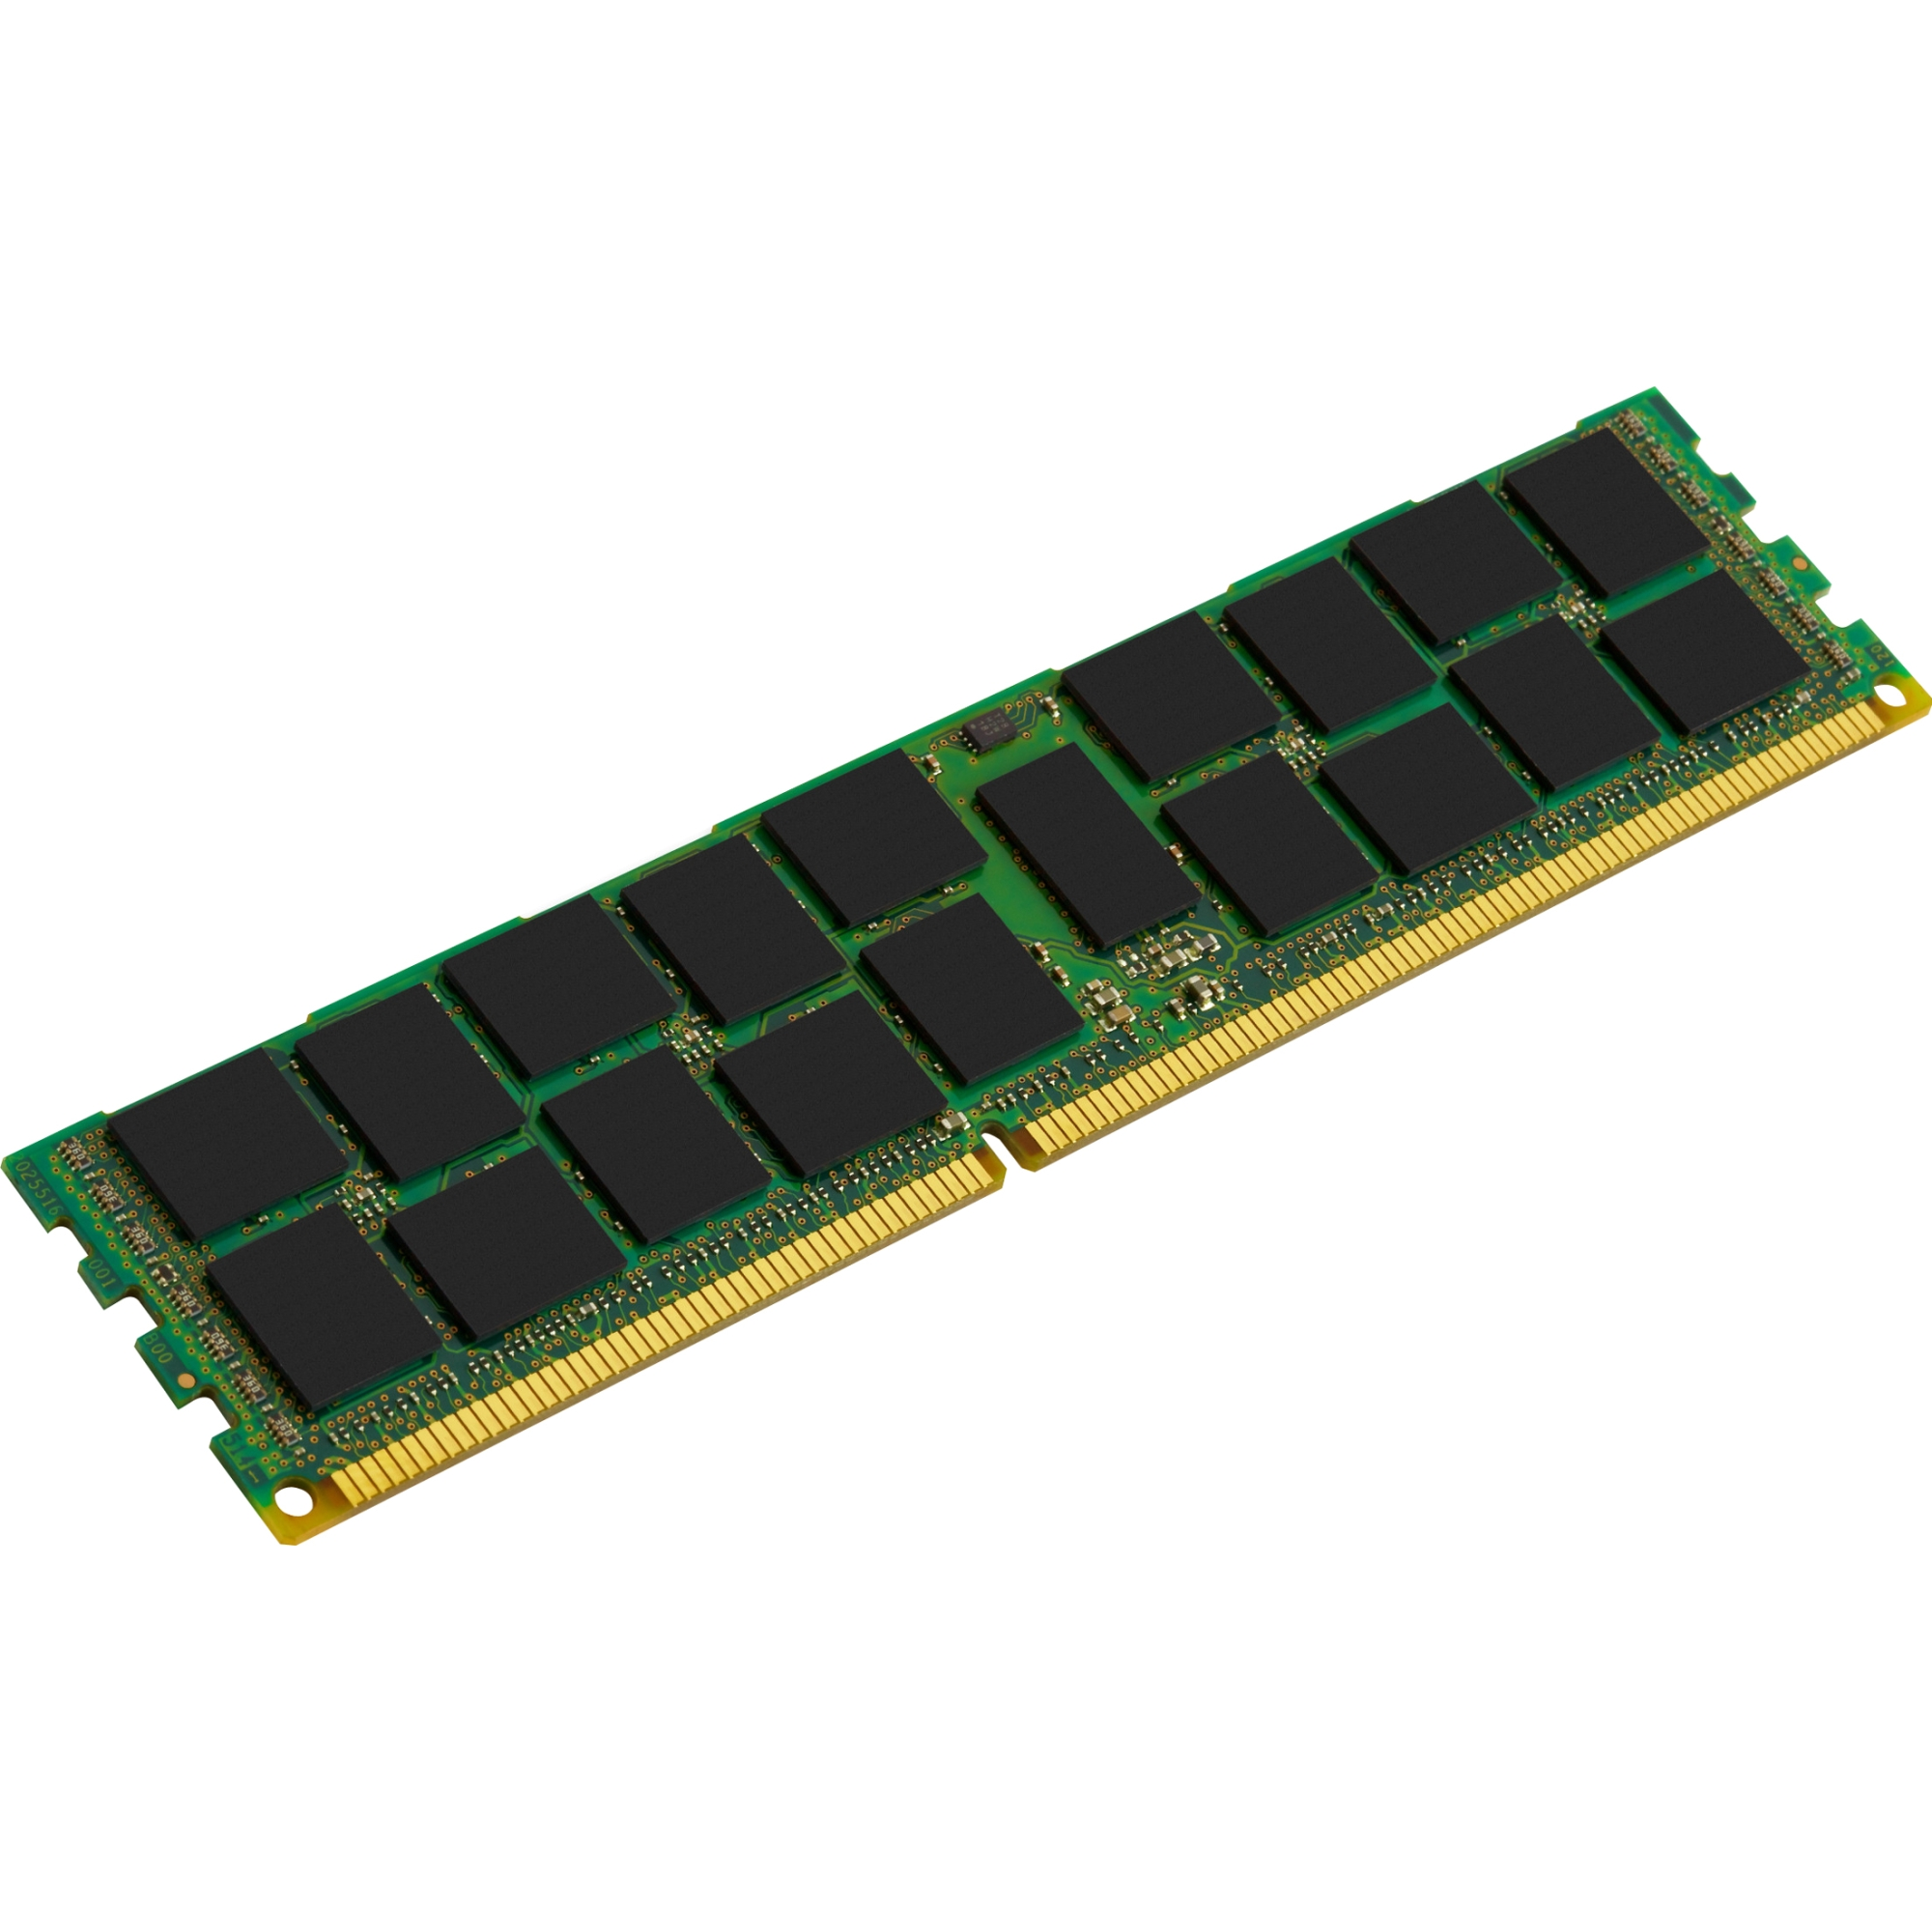 Kingston 16GB 1600MHz Reg ECC Low Voltage Module - 16 GB (1 x 16 GB) - DDR3 SDRAM - 1600 MHz DDR3-1600/PC3-12800 - ECC